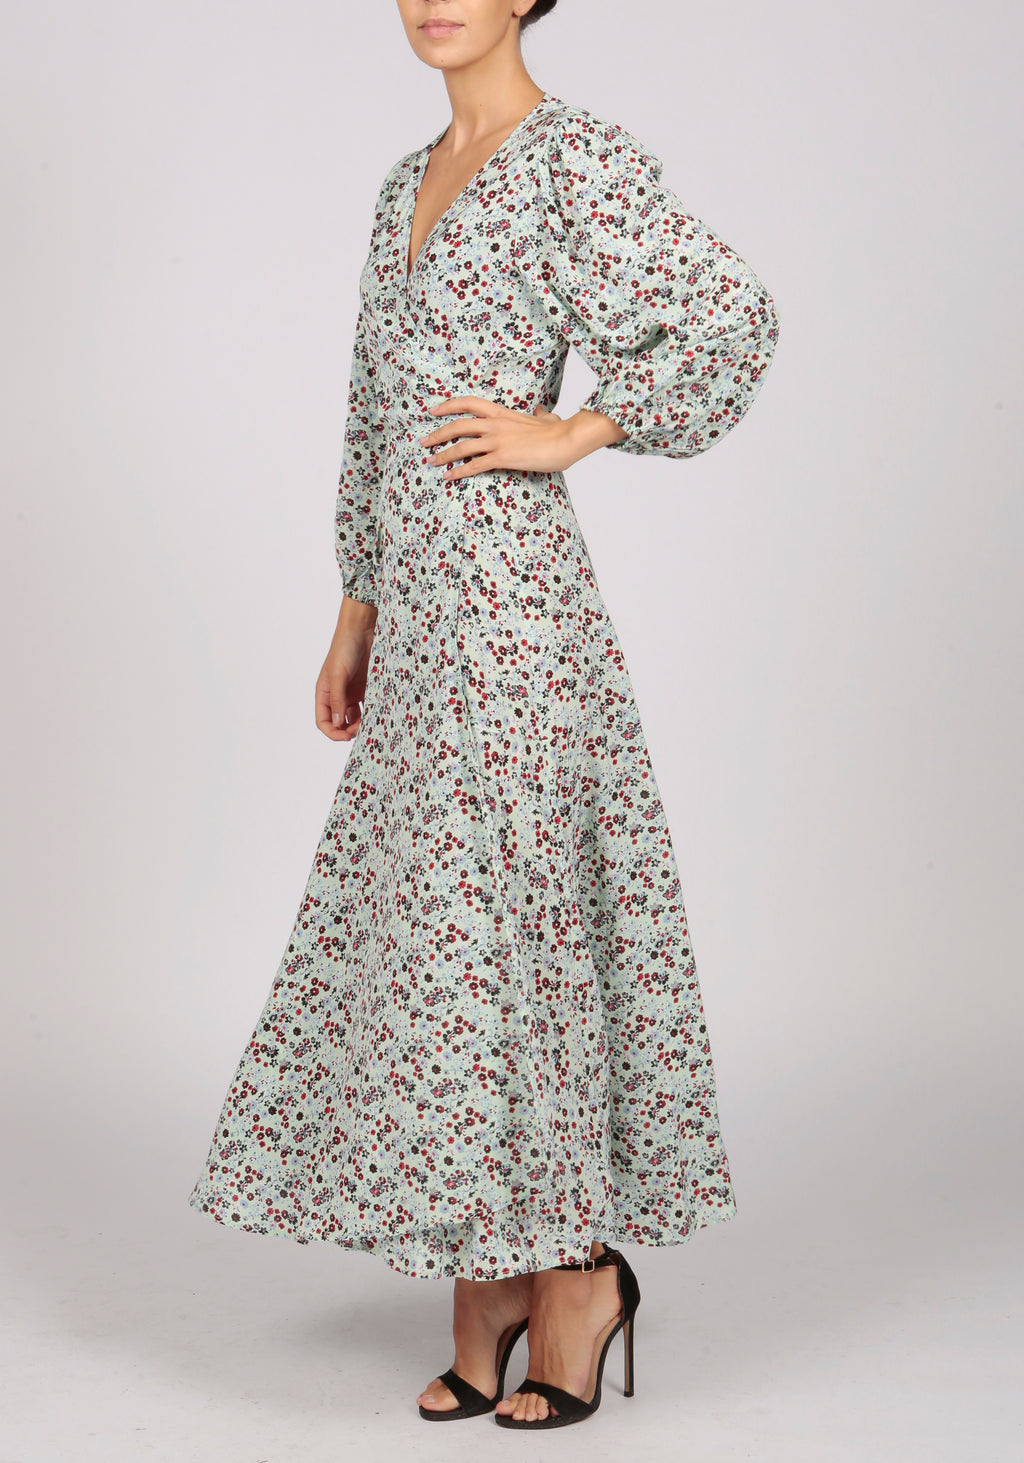 Essentiel Antwerp Mint Floral Print Wrap Dress - RRP £270